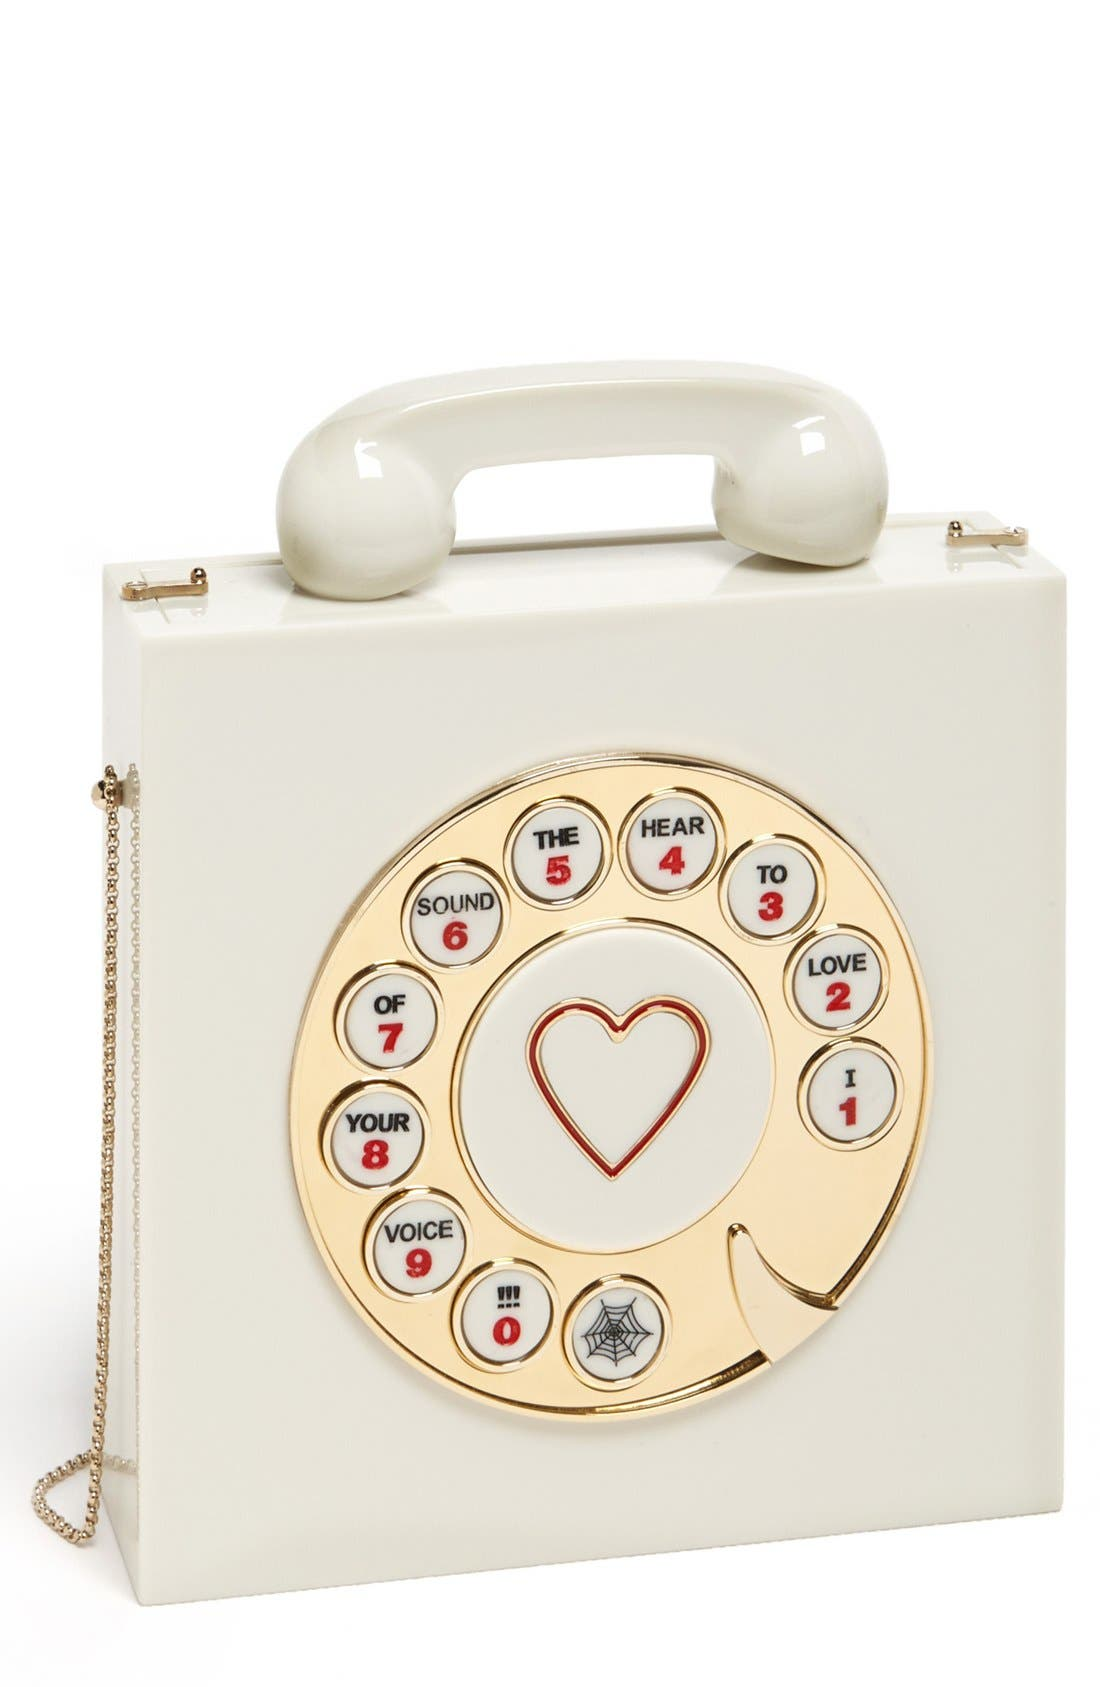 Alternate Image 1 Selected - Charlotte Olympia 'Chatterbox' Clutch